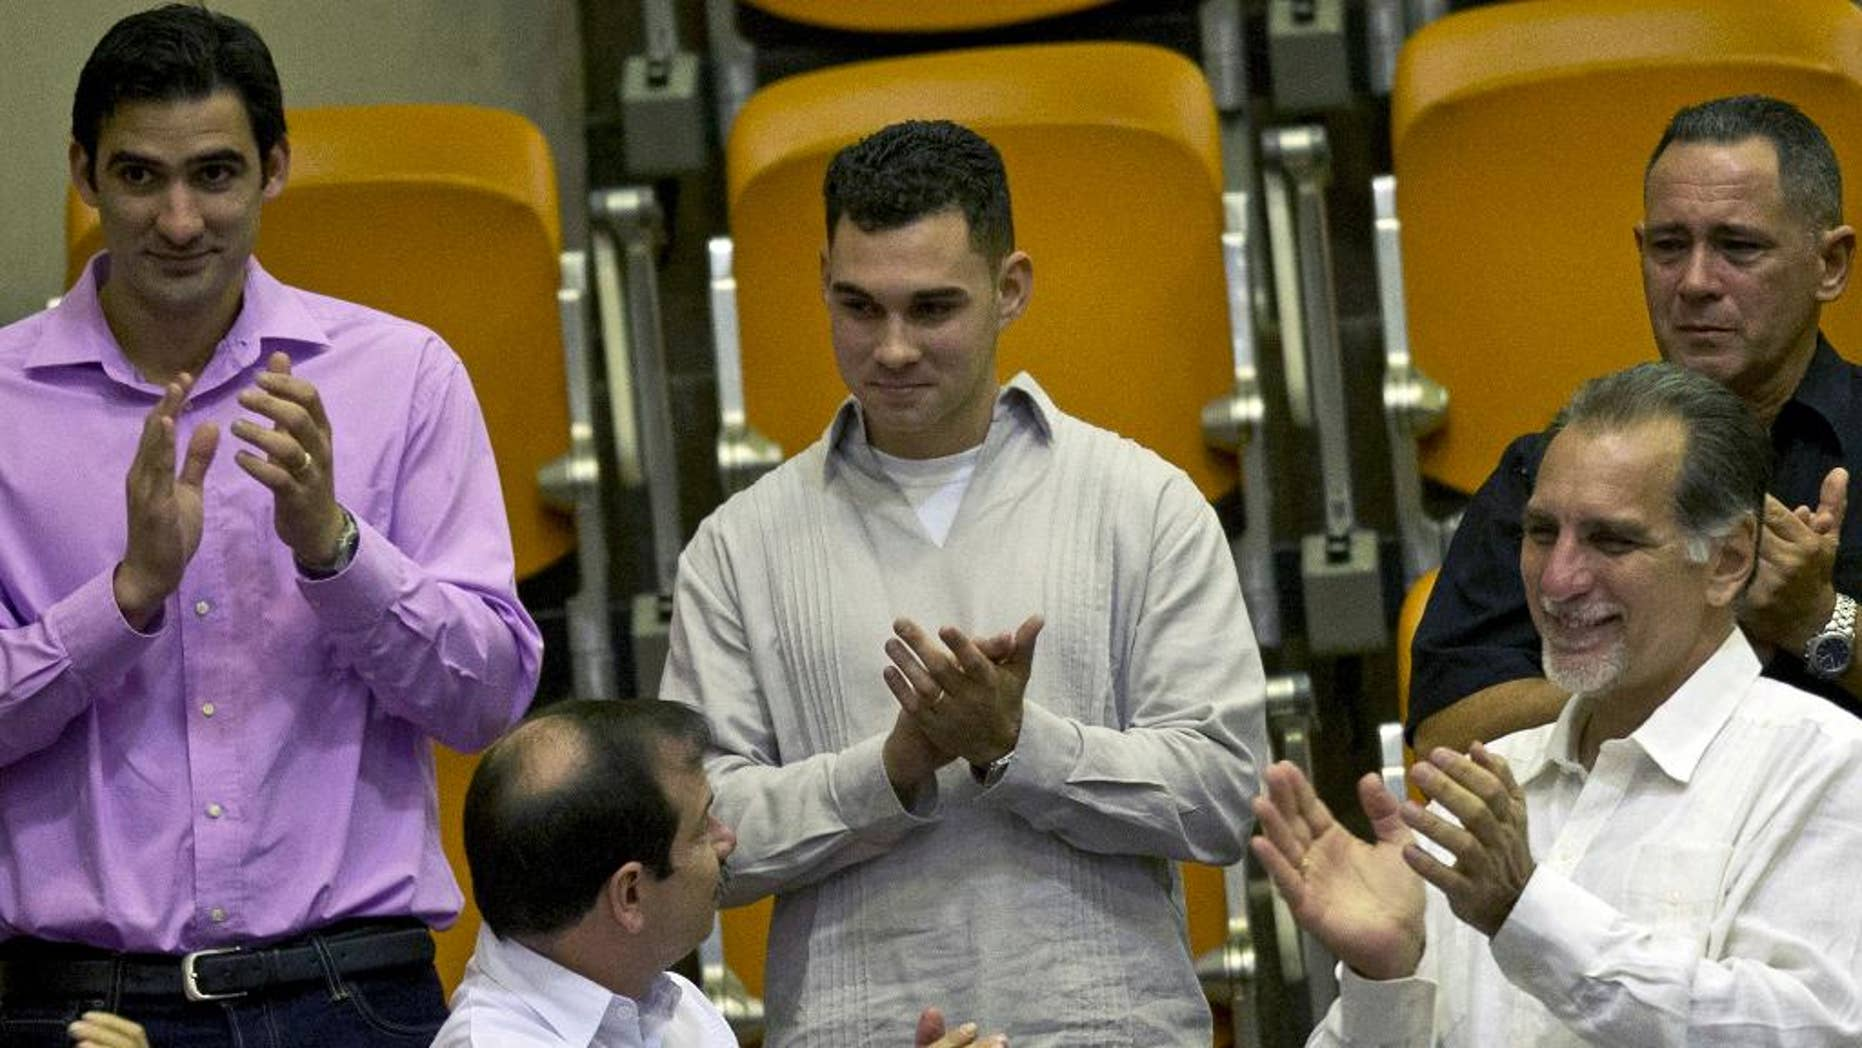 "FILE - In this Dec. 20, 2014 file photo, Elian Gonzalez, center, the young Cuban rafter who was at the center of a bitter custody battle in 2000 between relatives in Miami and his father in Cuba, is recognized with applause during the legislative session at the National Assembly in Havana, Cuba. Cuban government website Cubadebate reported Friday, July 15, 2016, the now 22-year-old Gonzalez received his diploma in industrial engineering from the University of Matanzas. Flanked by Fernando Gonzalez, bottom left, and Rene Gonzalez, front right, members of the ""Cuban Five"" spy ring. (AP Photo/Ramon Espinosa)"